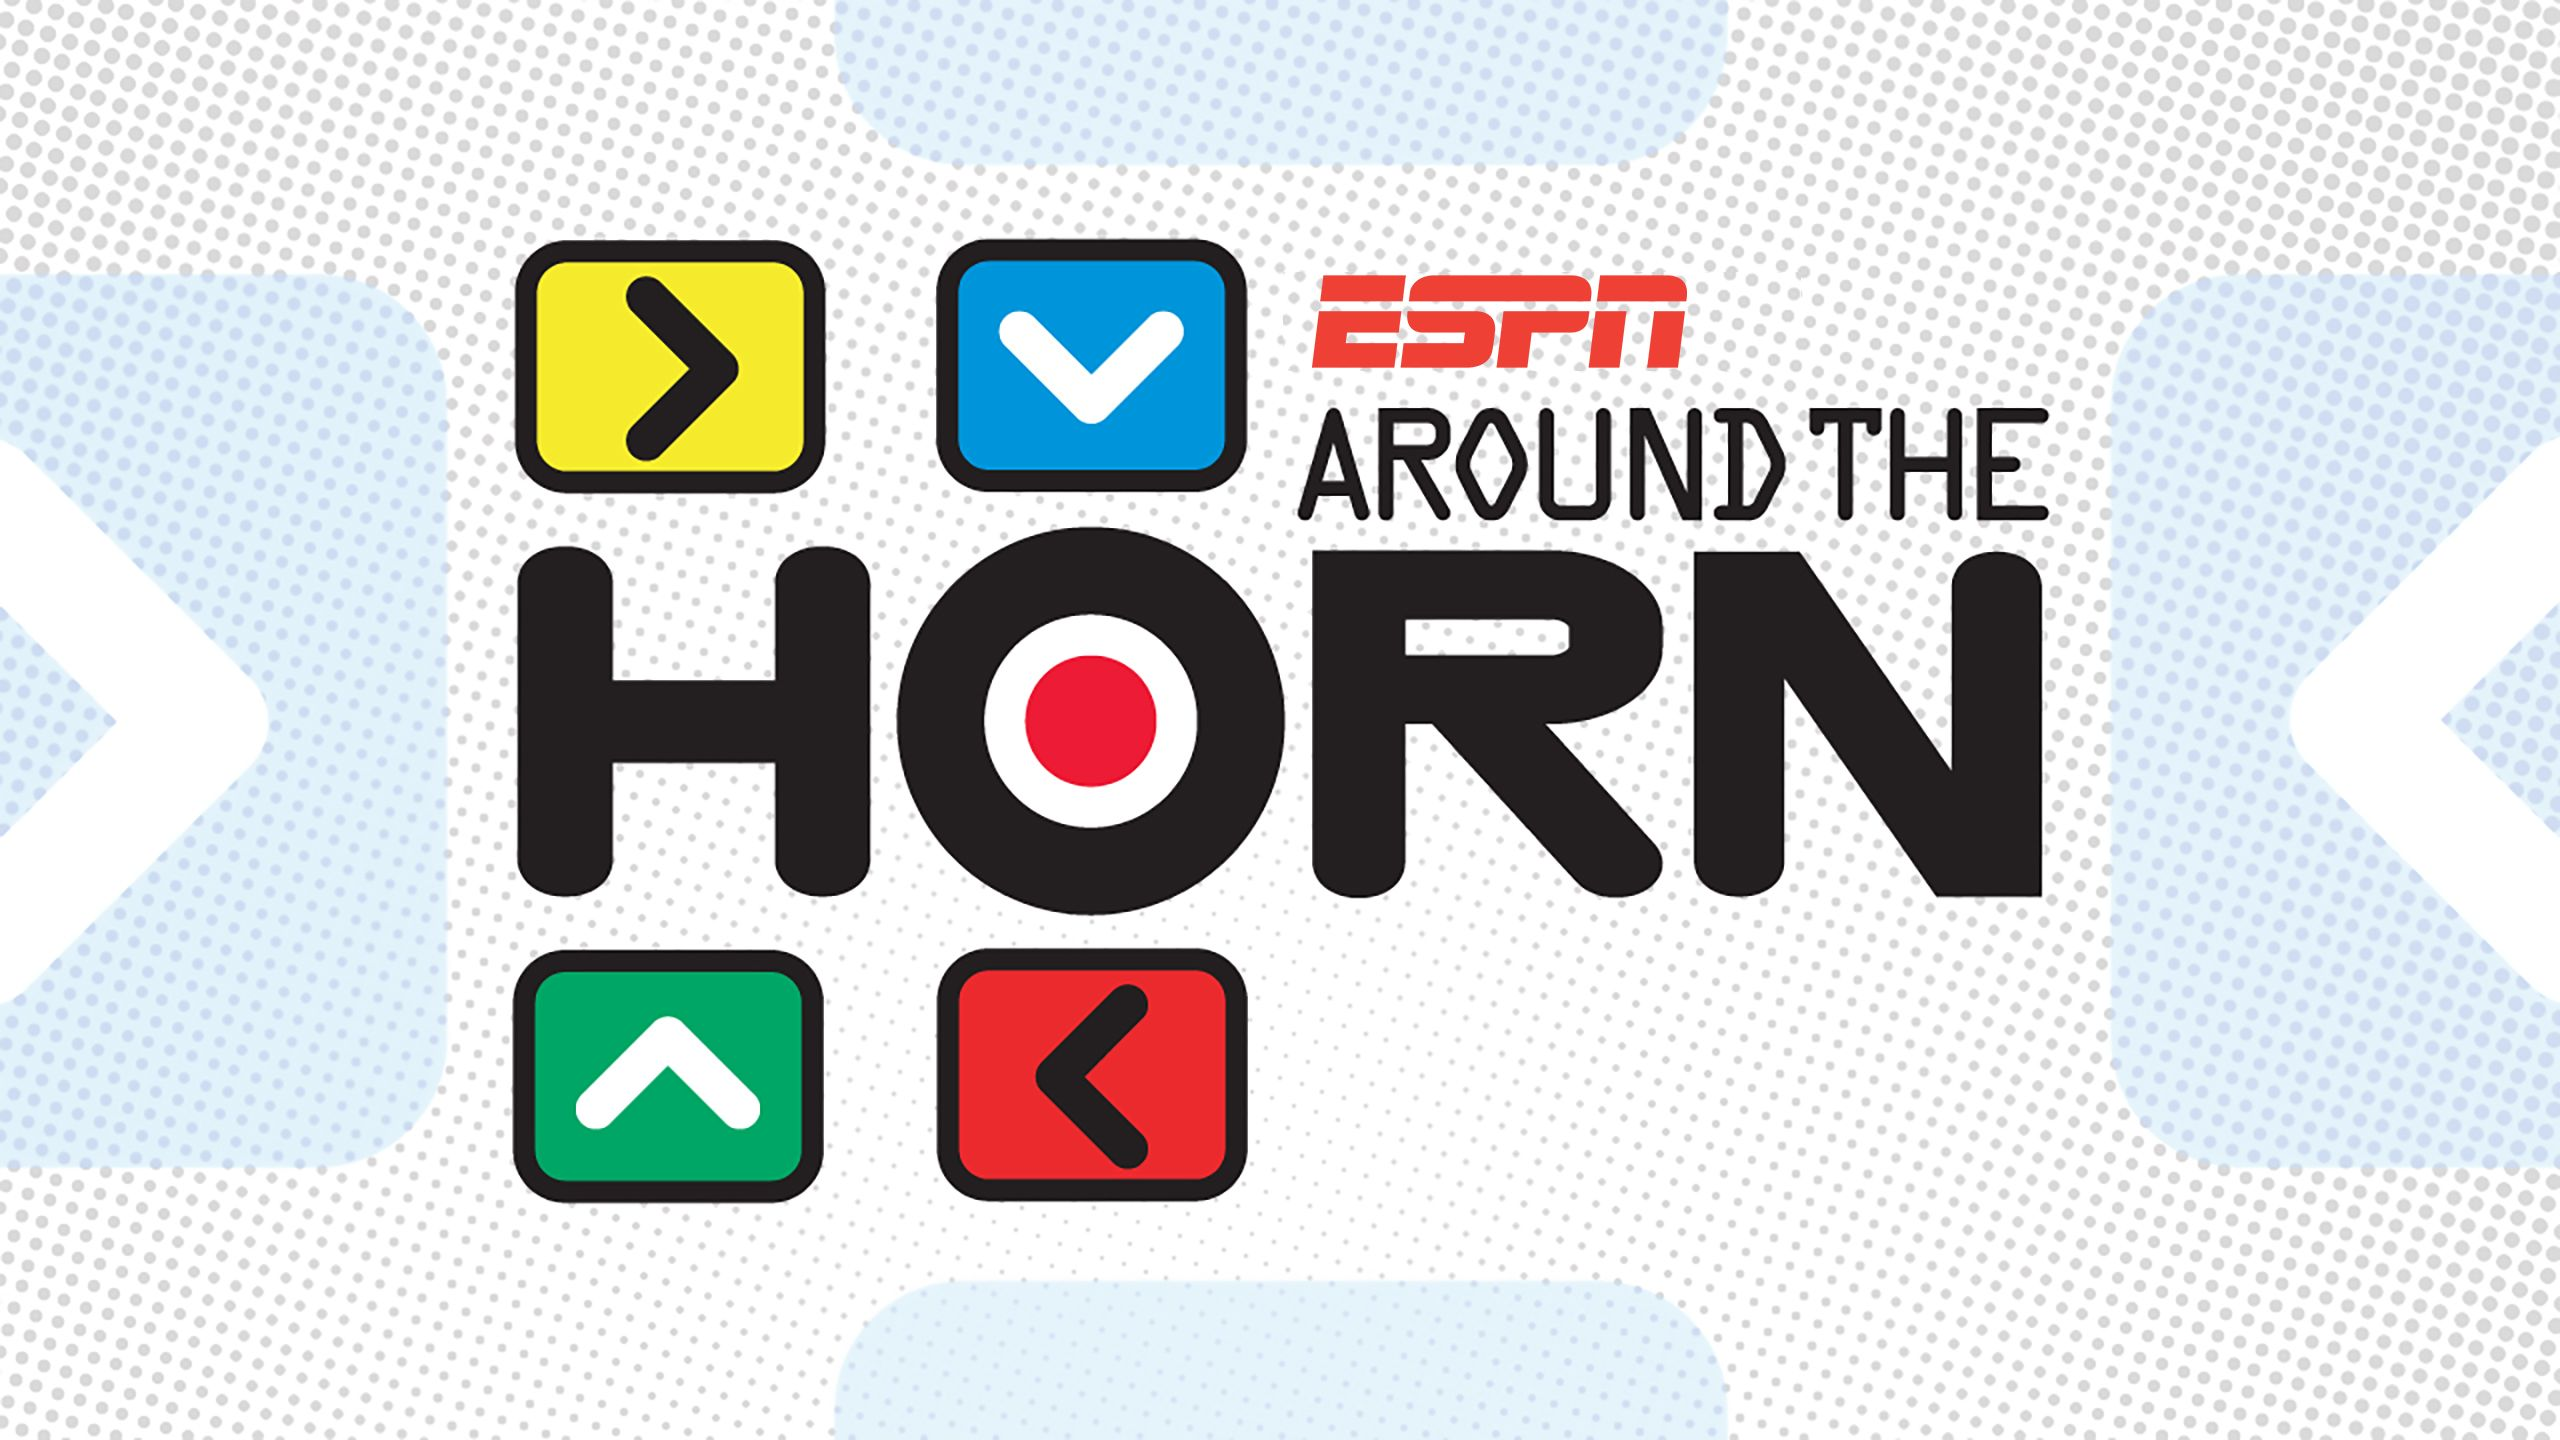 Mon, 1/22 - Around The Horn